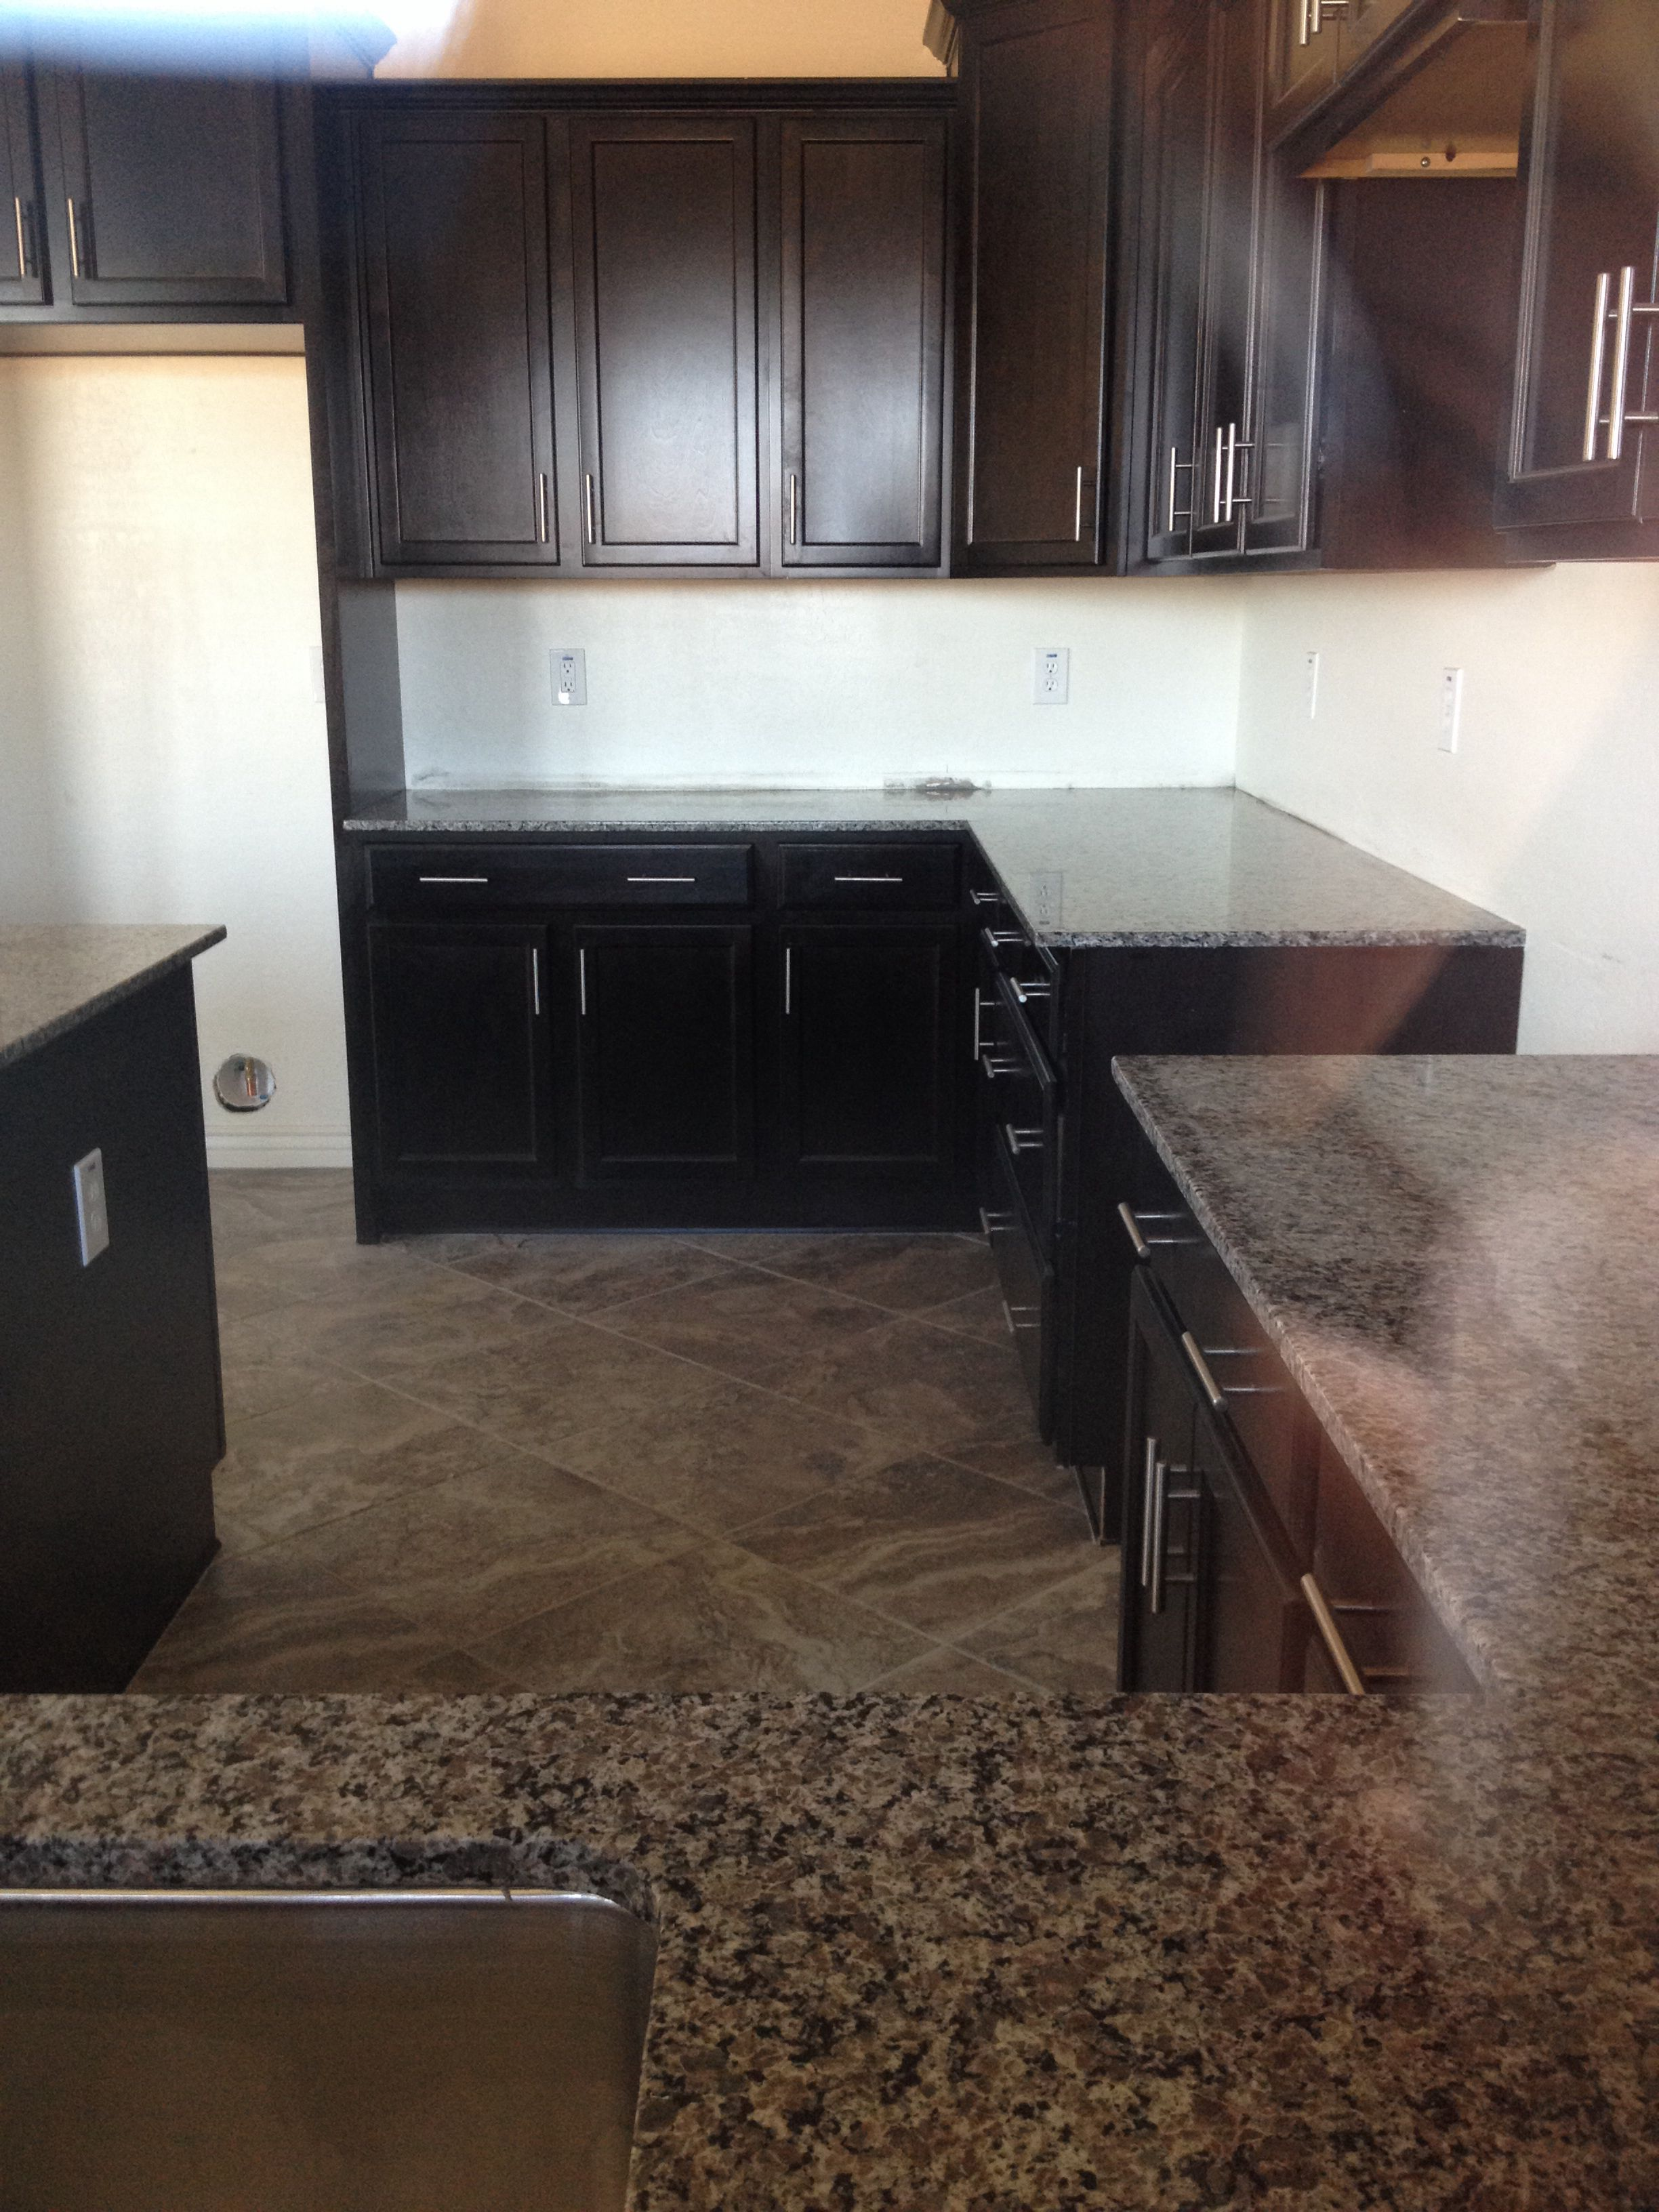 - New Caledonia Granite With Espresso Cabinets. A Peek Through The